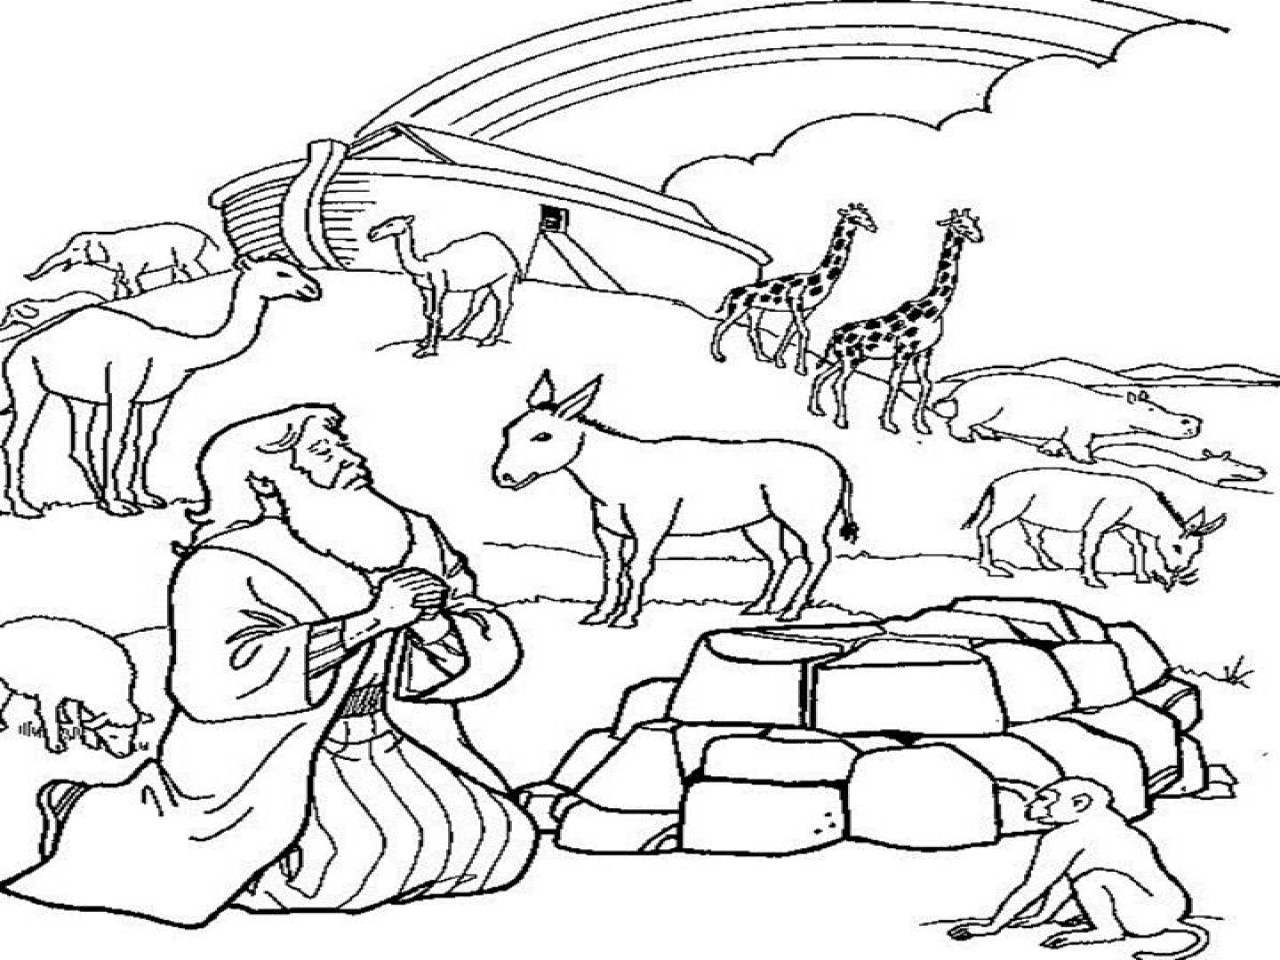 Best ideas about Noah'S Ark Free Coloring Pages . Save or Pin 60 Noah Ark Coloring Page Noah Rainbow Colouring Pages Now.